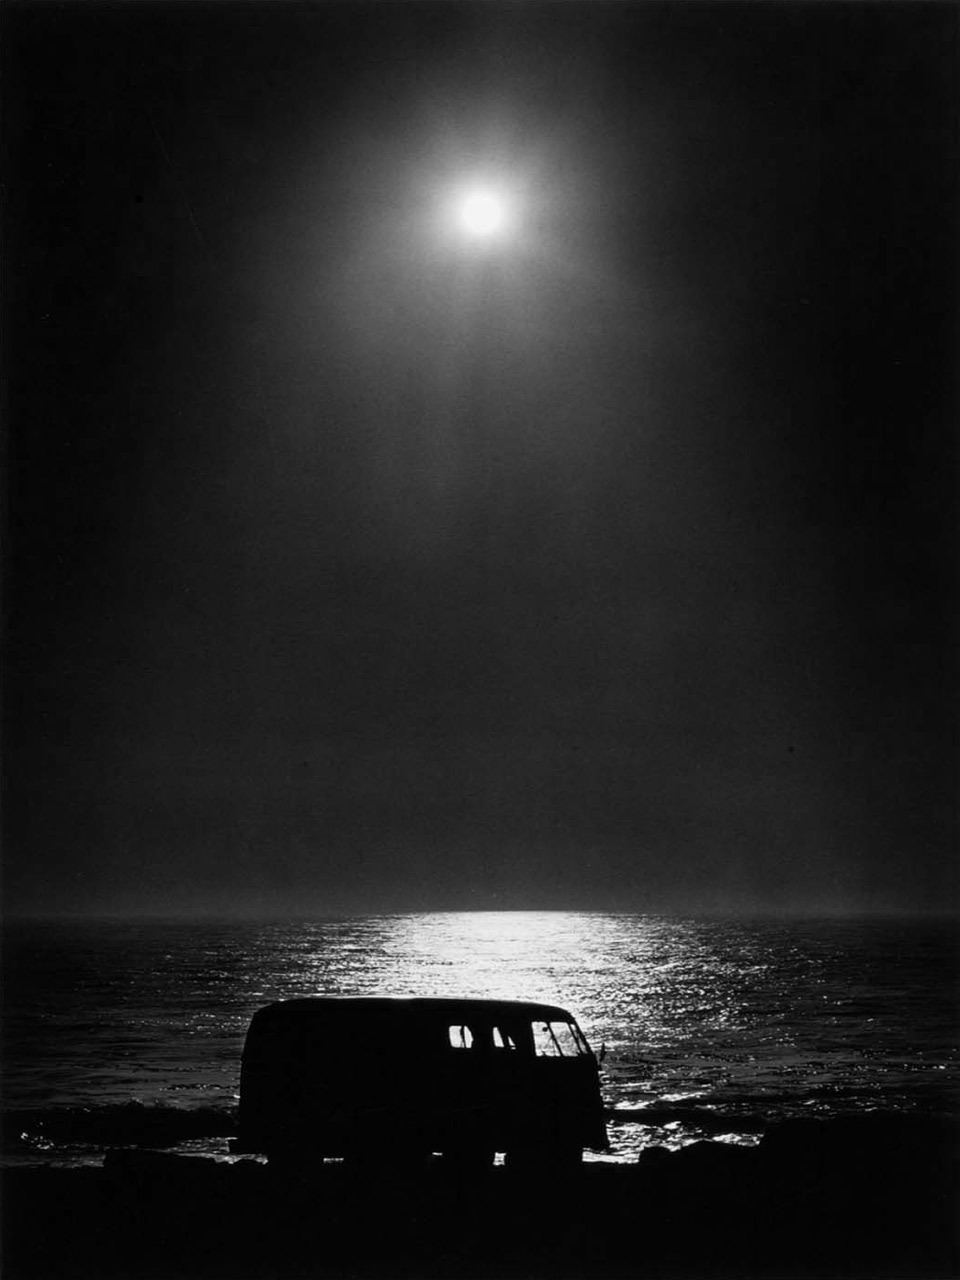 luzfosca:  Paul Herzoff The End of the Continent, 1971  A moon filled night, the ocean, a VW bus, and of course that certain someone to share it with… PERFECT!